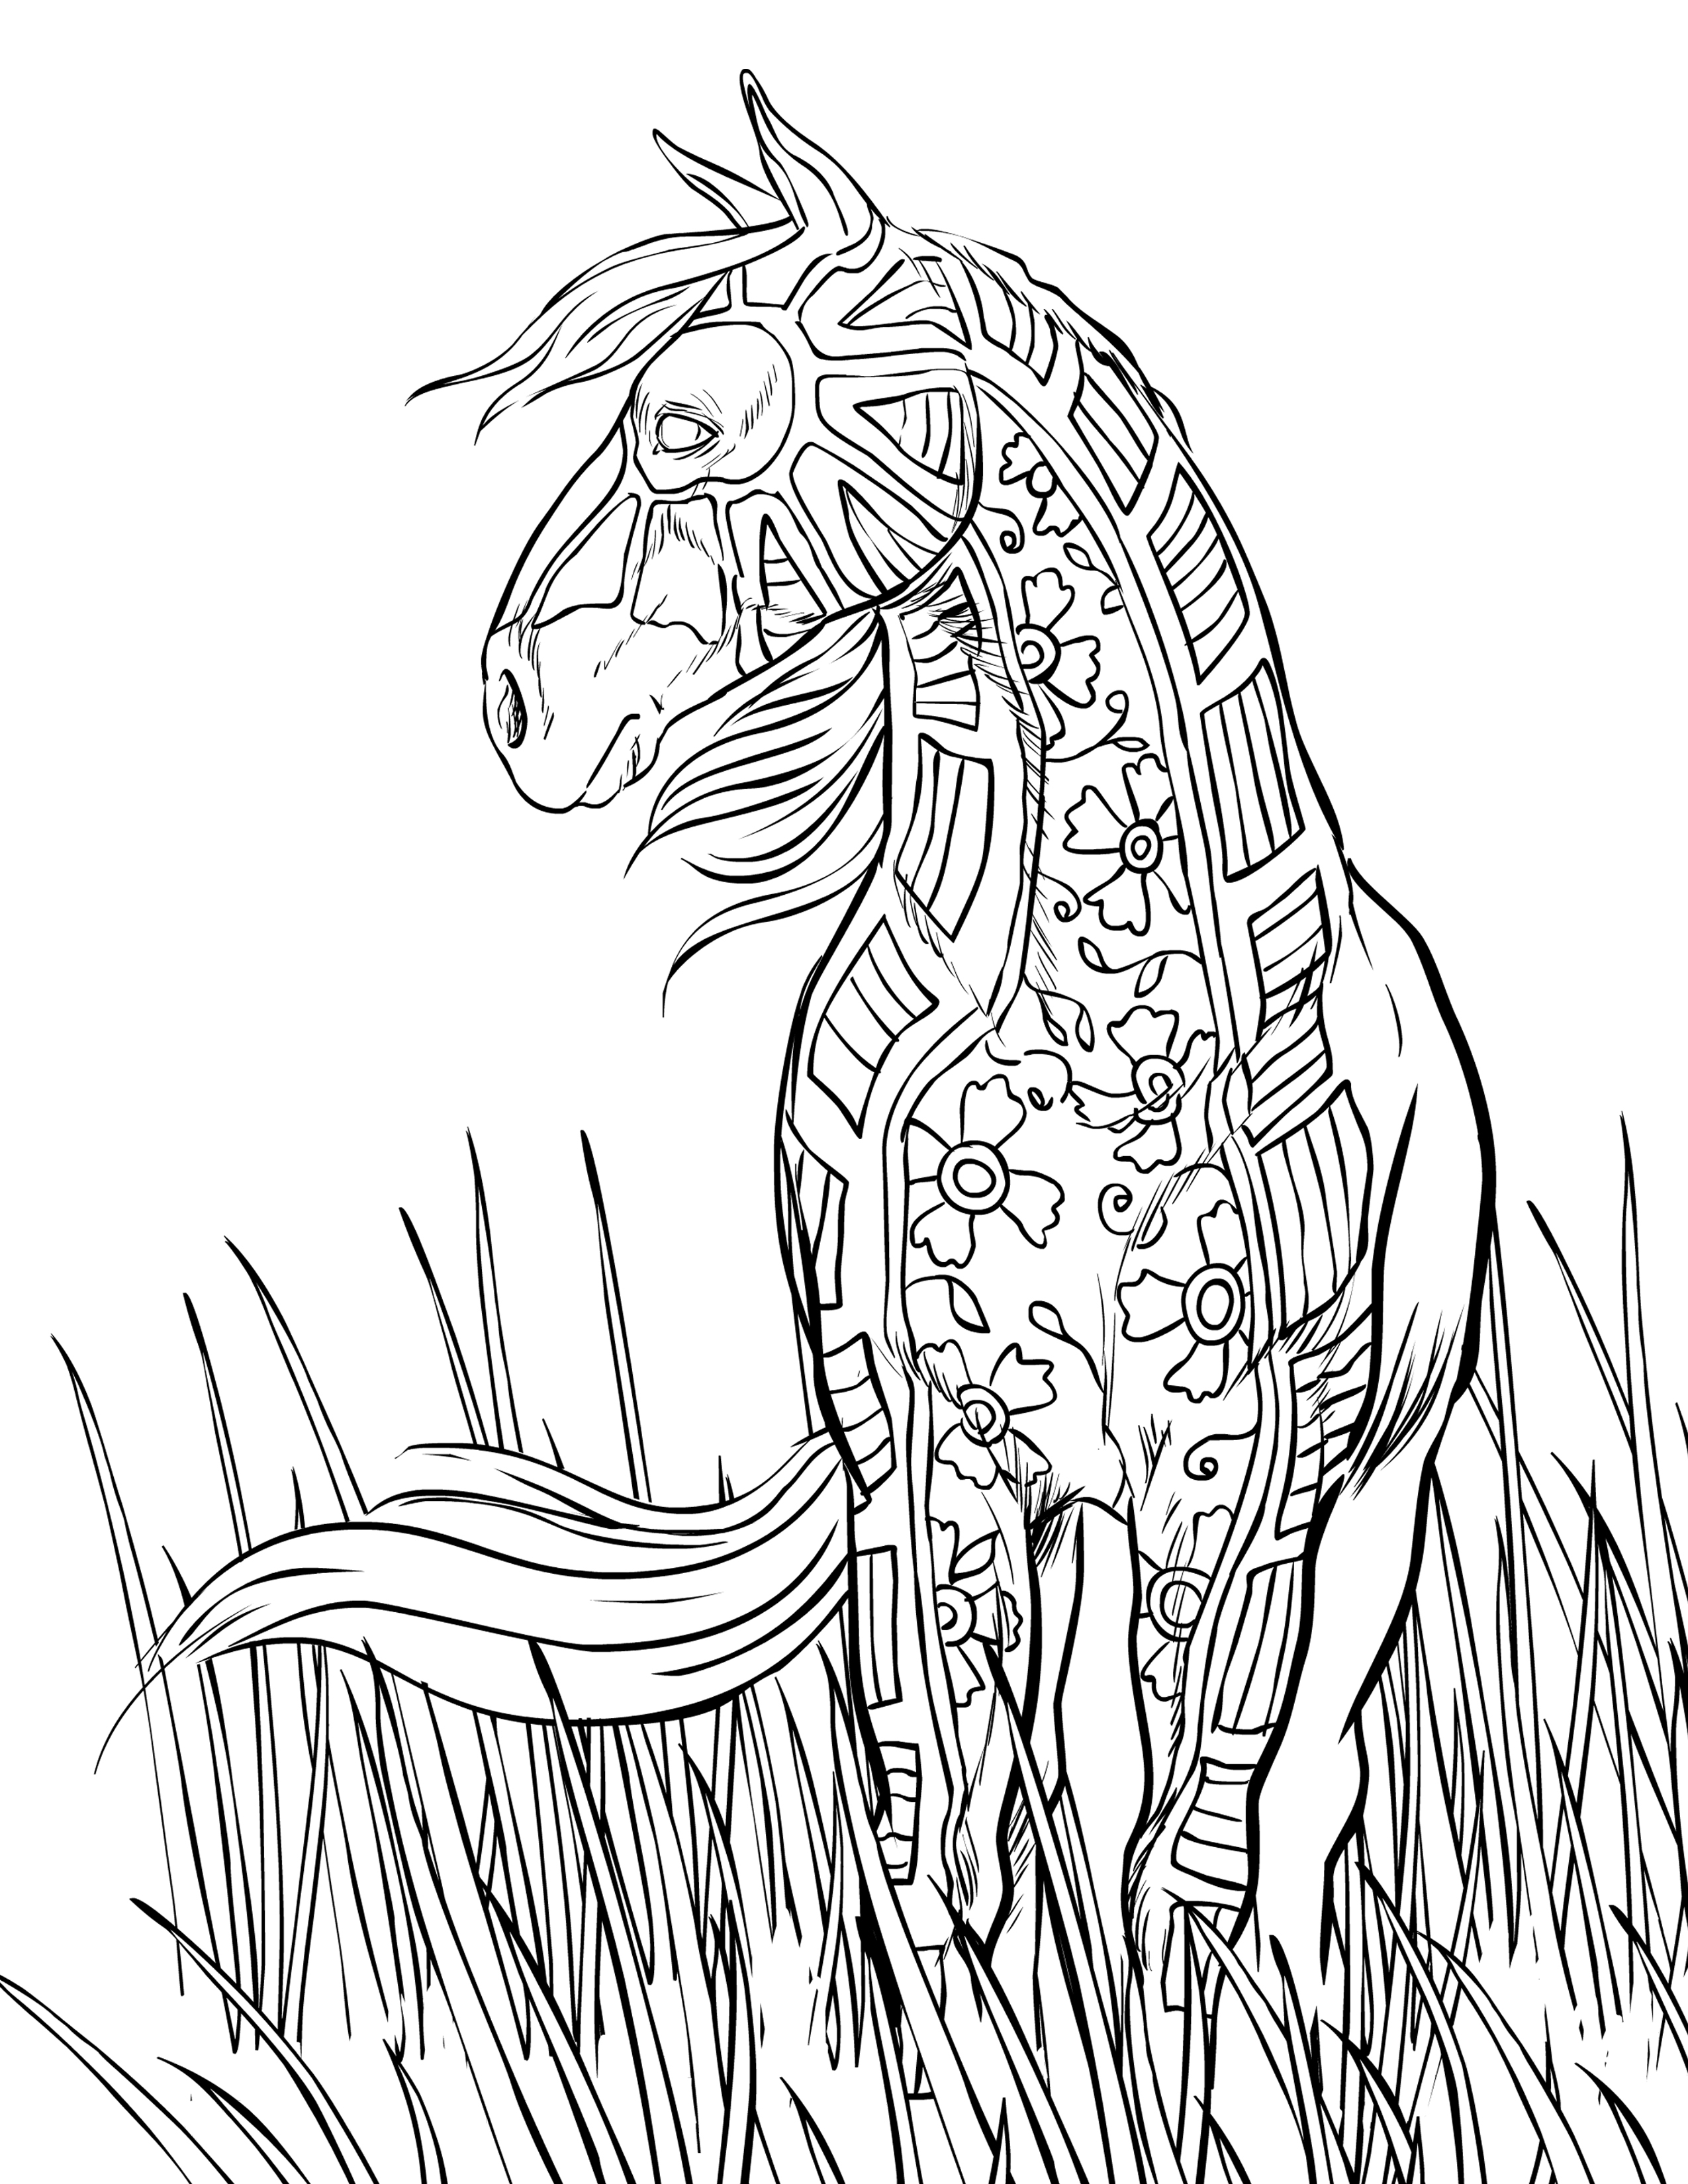 Coloring Pages Horses Free Horse Coloring Pages Selah Works Adult Coloring Books